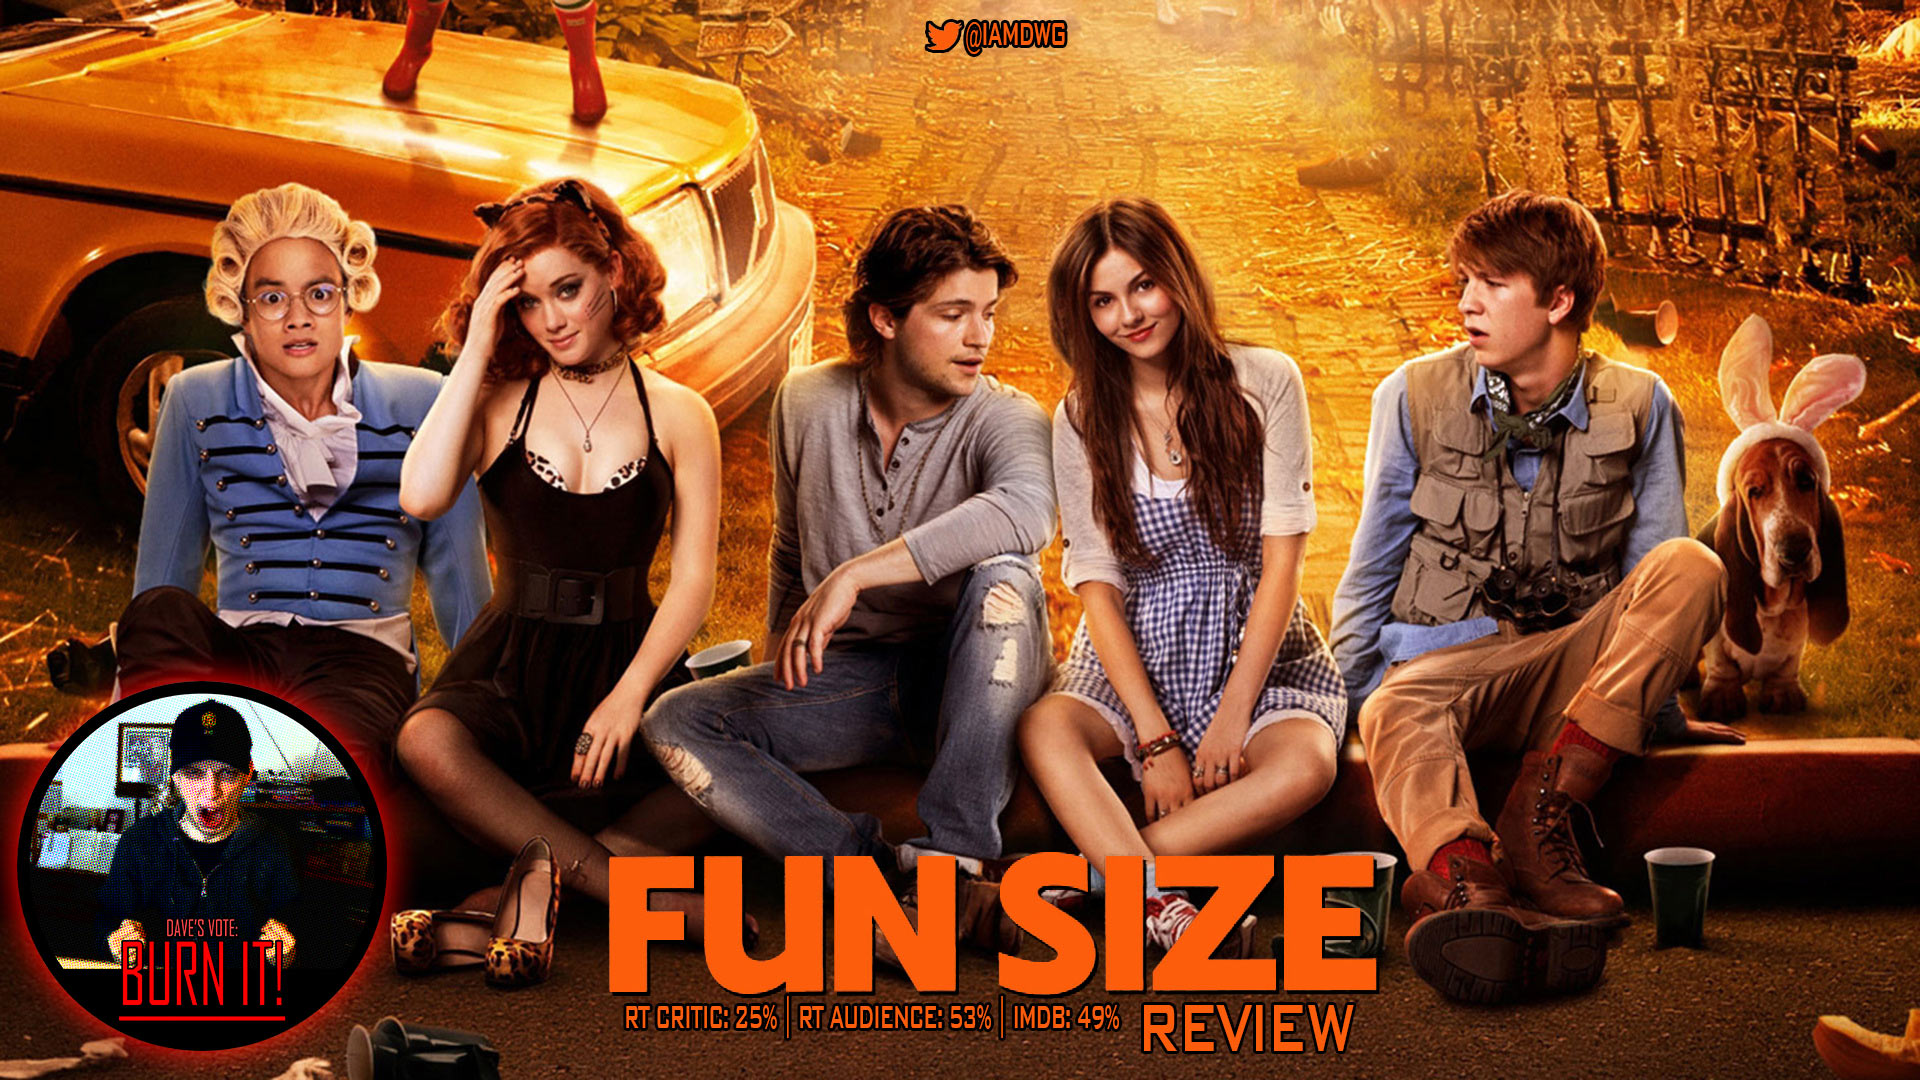 Watch Fun Size Full Movie Viooz Full Movie Free - No Registration